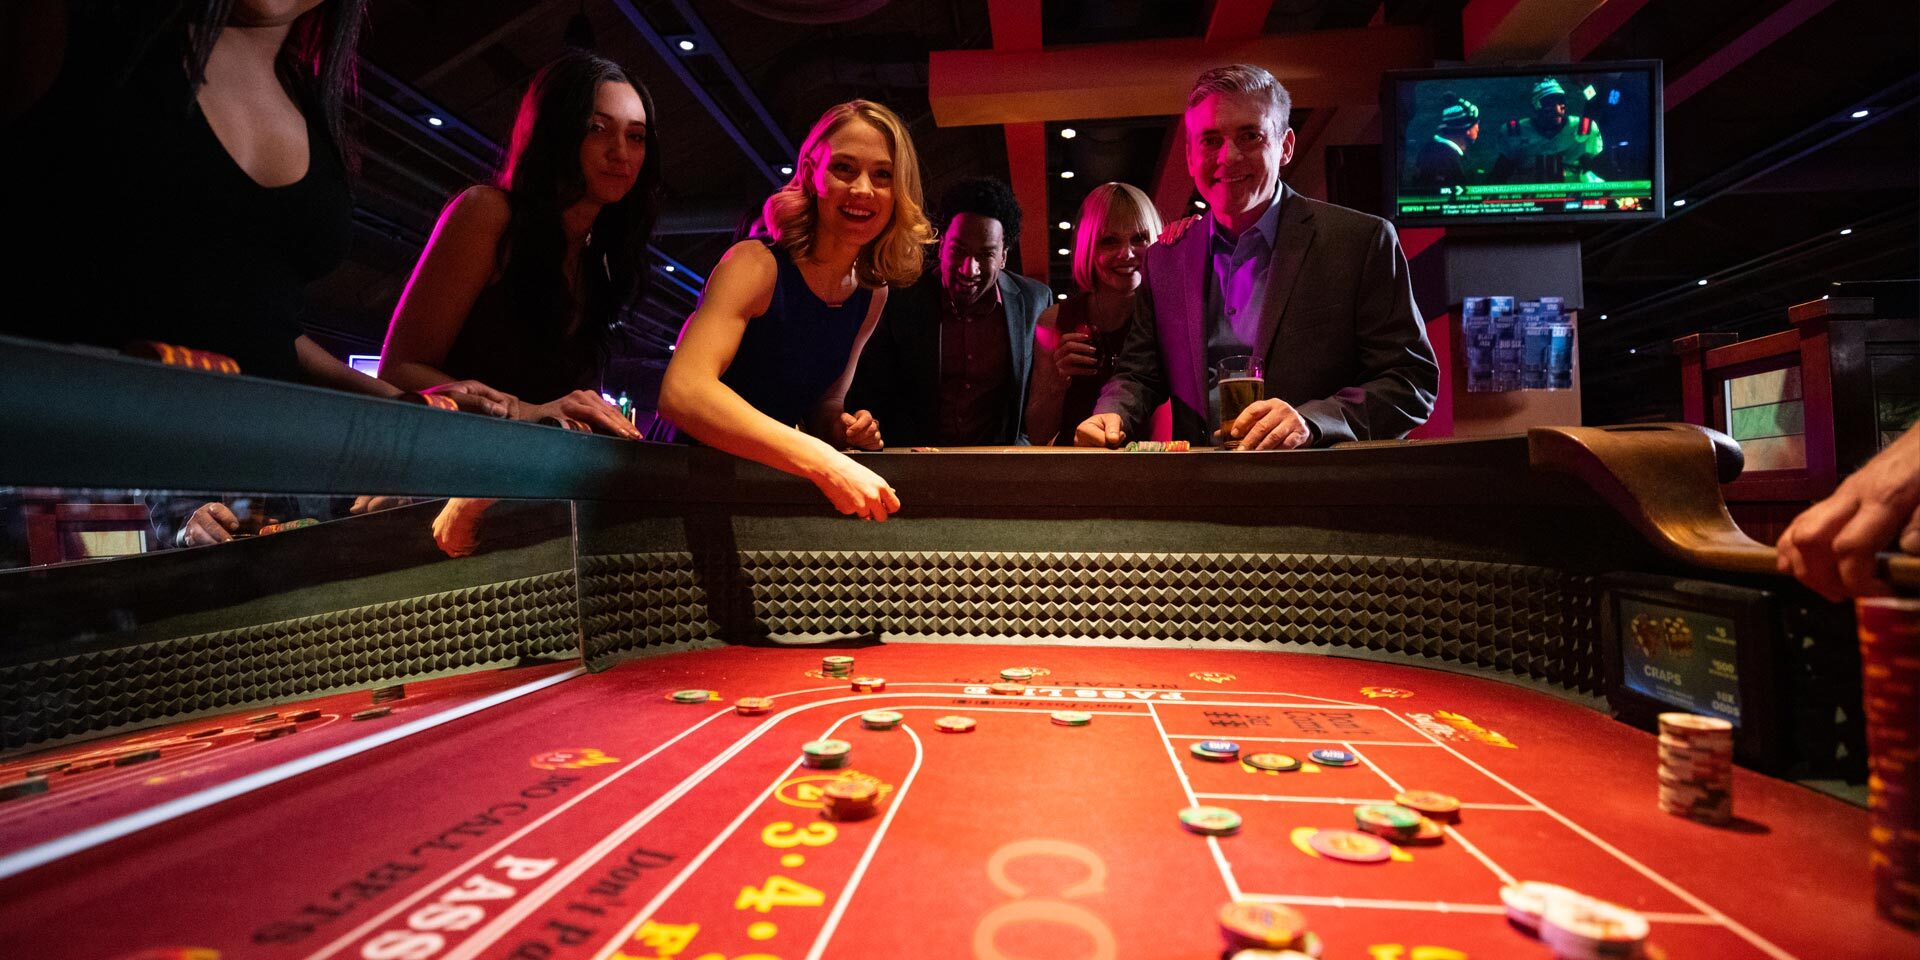 The most outstanding facilities in a reliable casino site will satisfy all customers